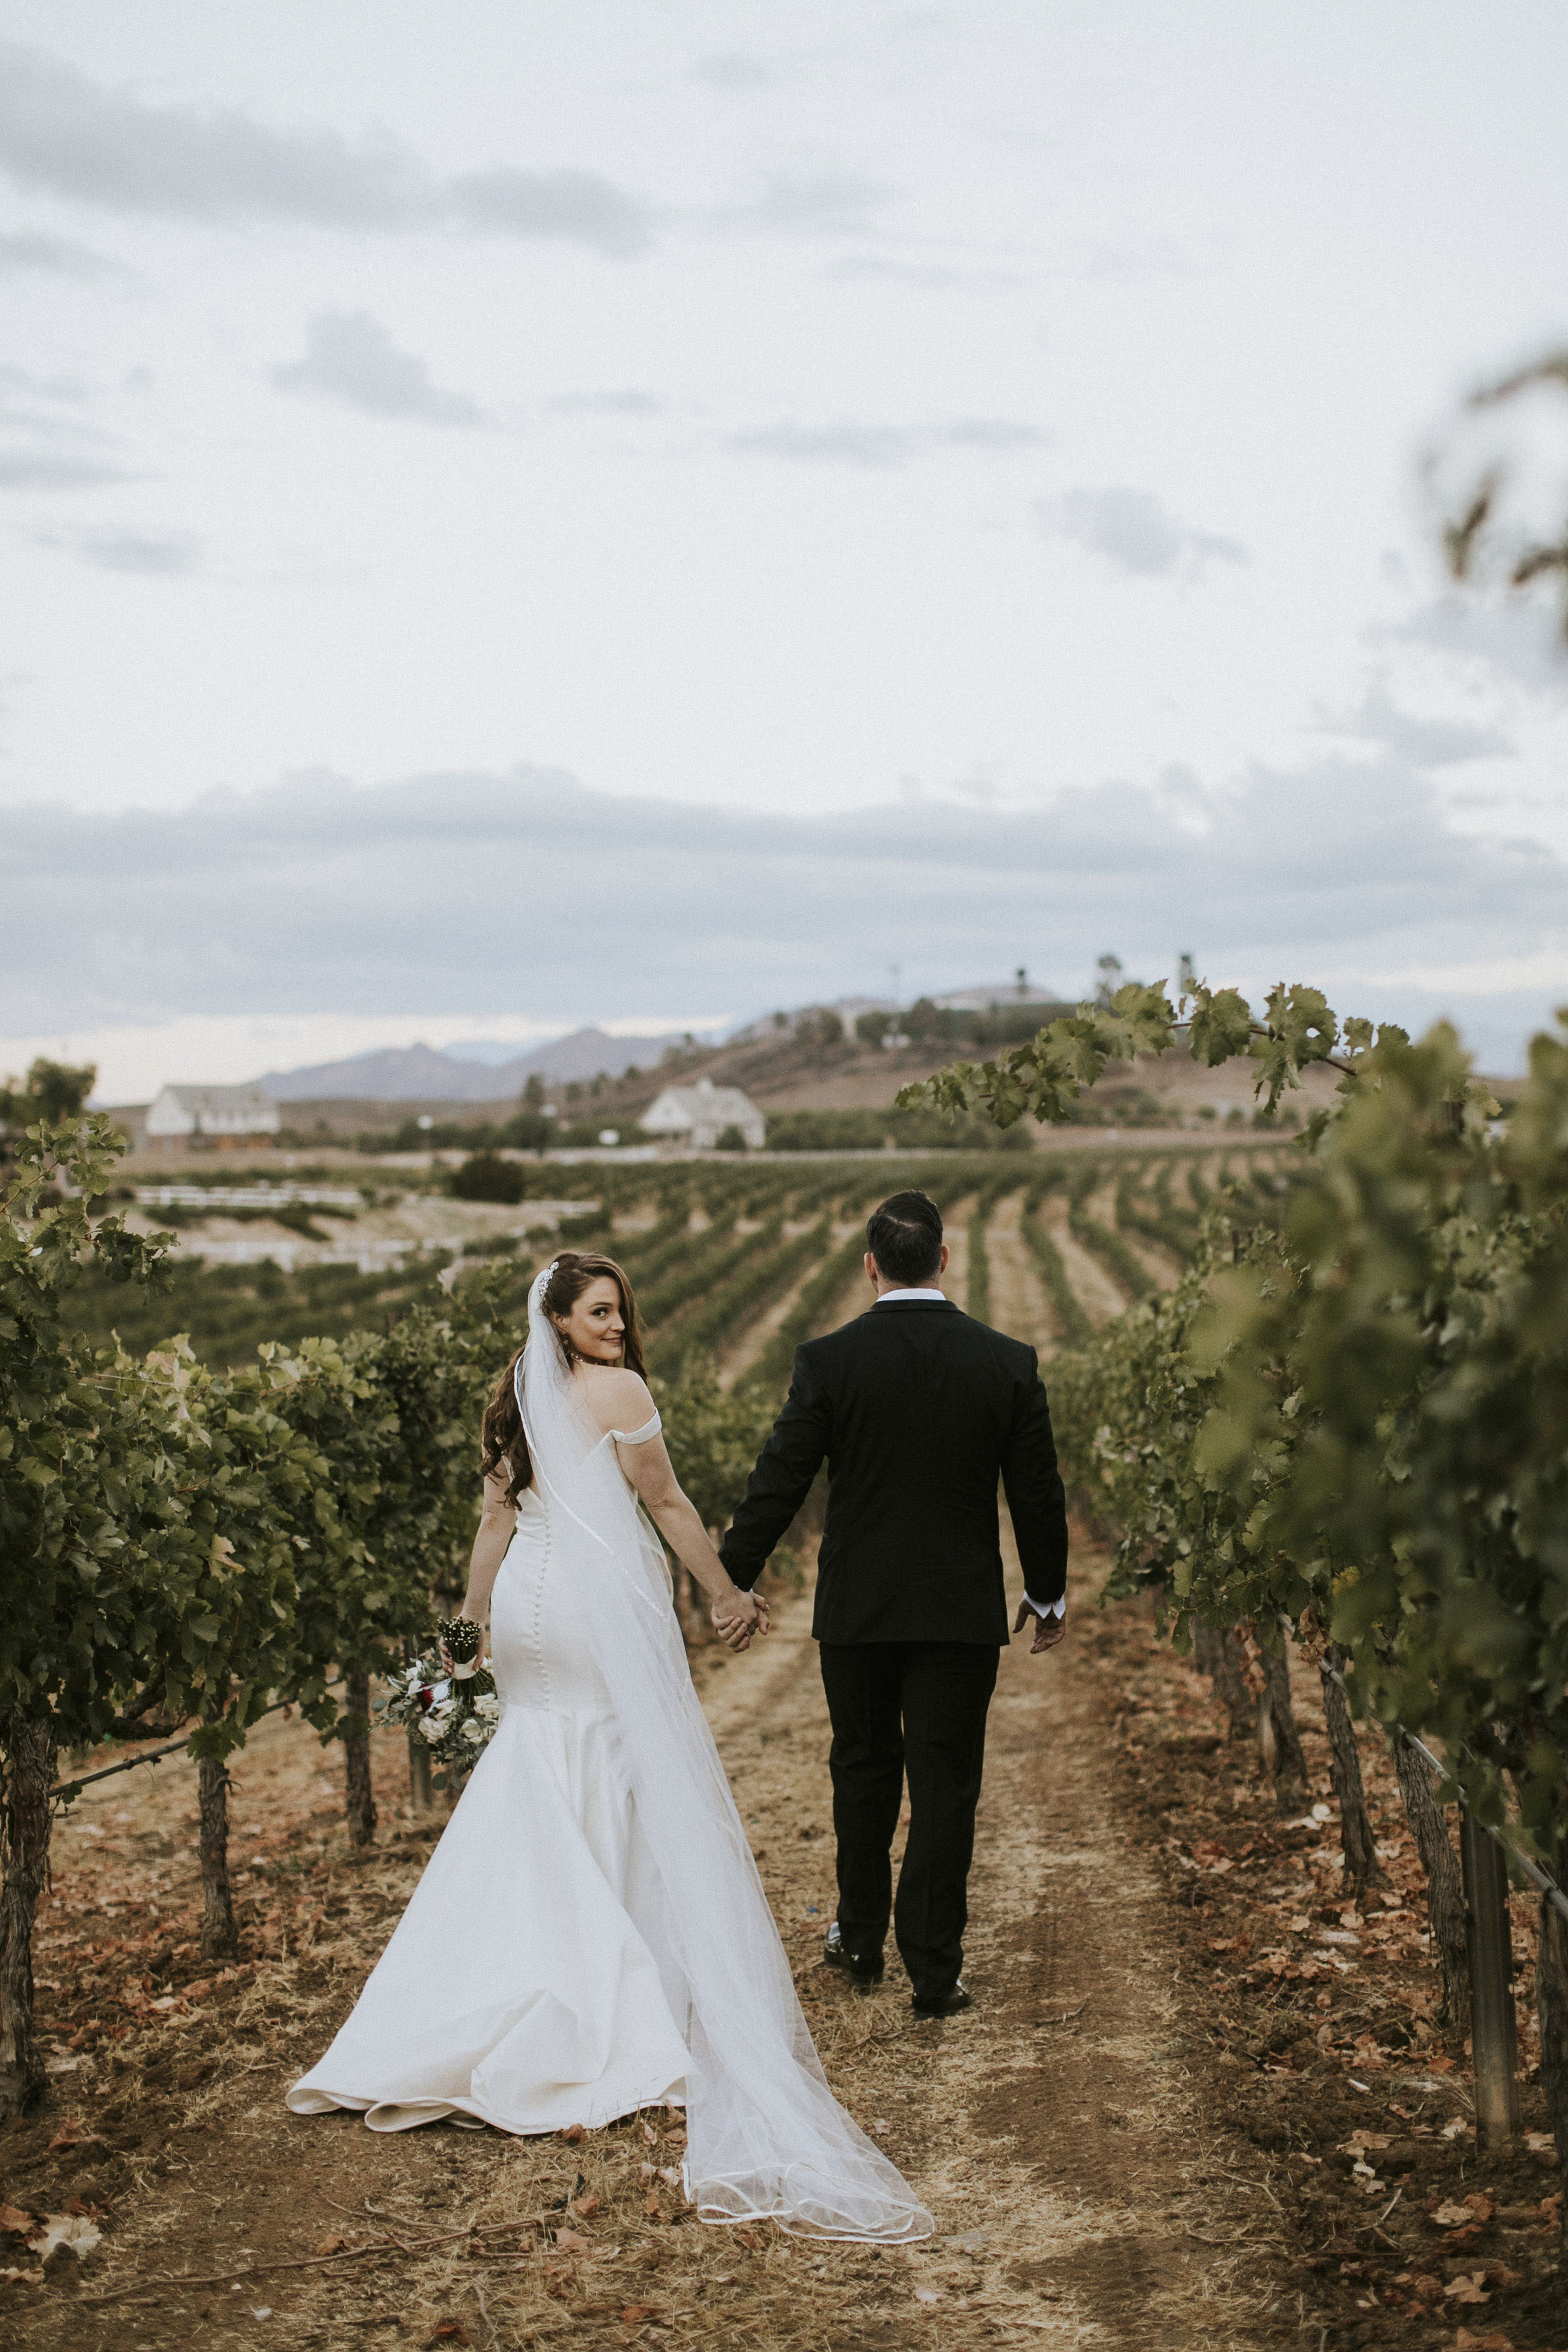 Domenica Beauty _ Hair and Makeup Artist _Wedding _ Temecula, CA _ Catherine and Darryl _ 34.JPG